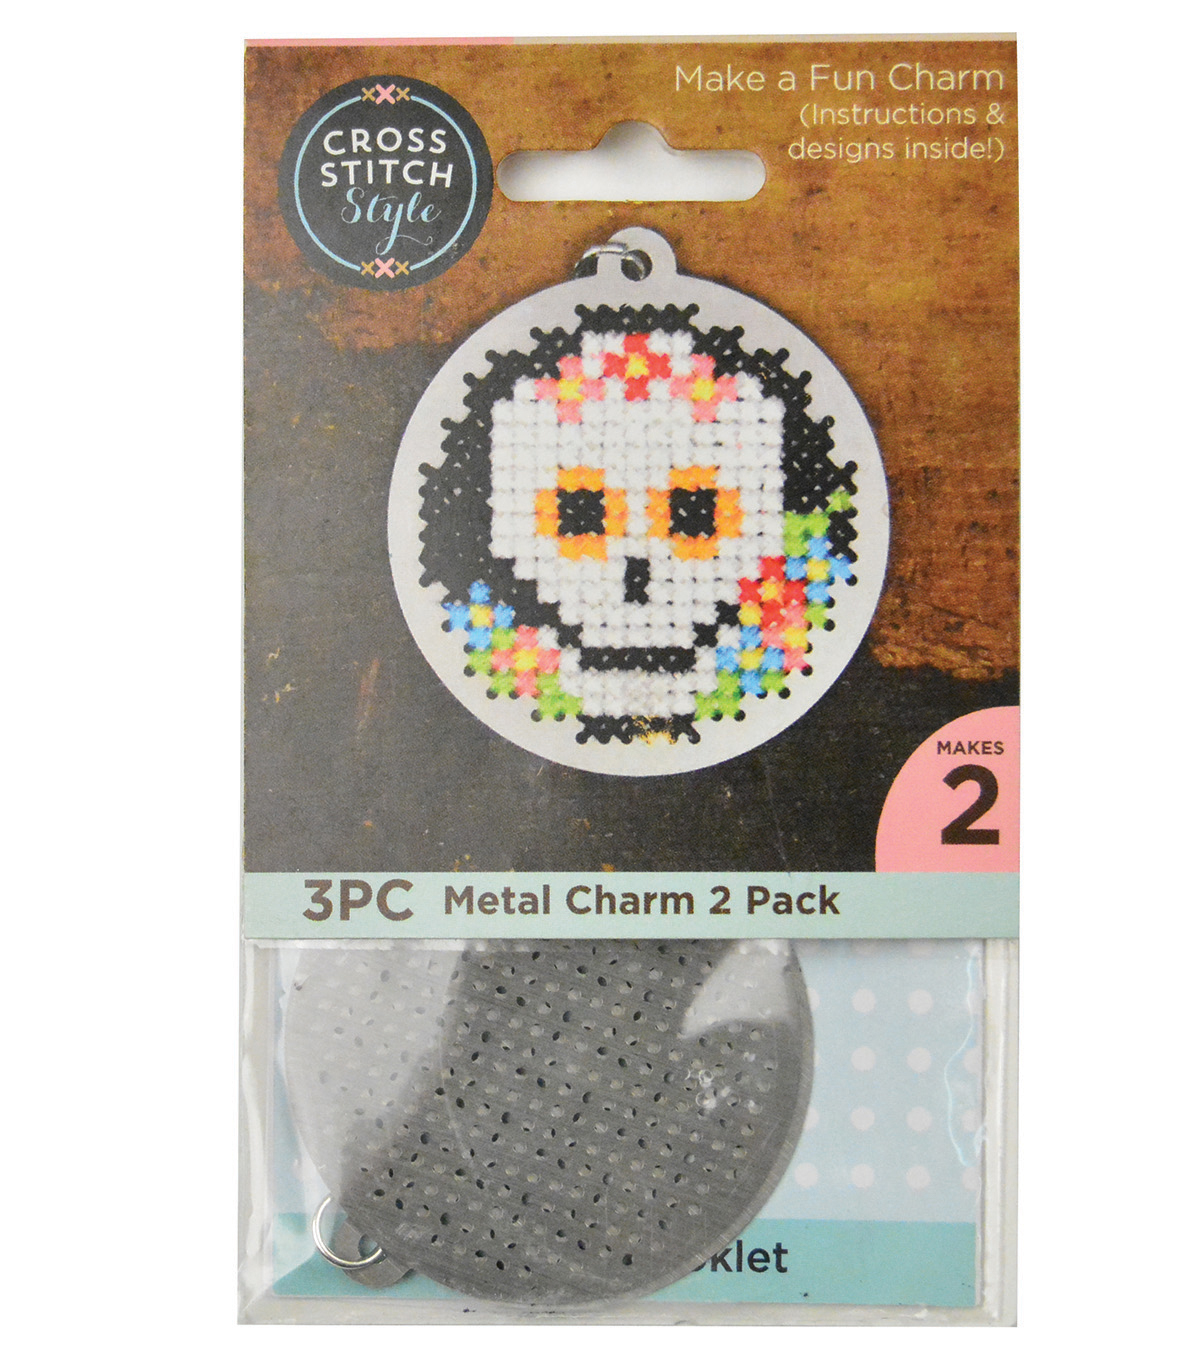 Cross Stitch Style 2 Pack Metal Charms-Circle